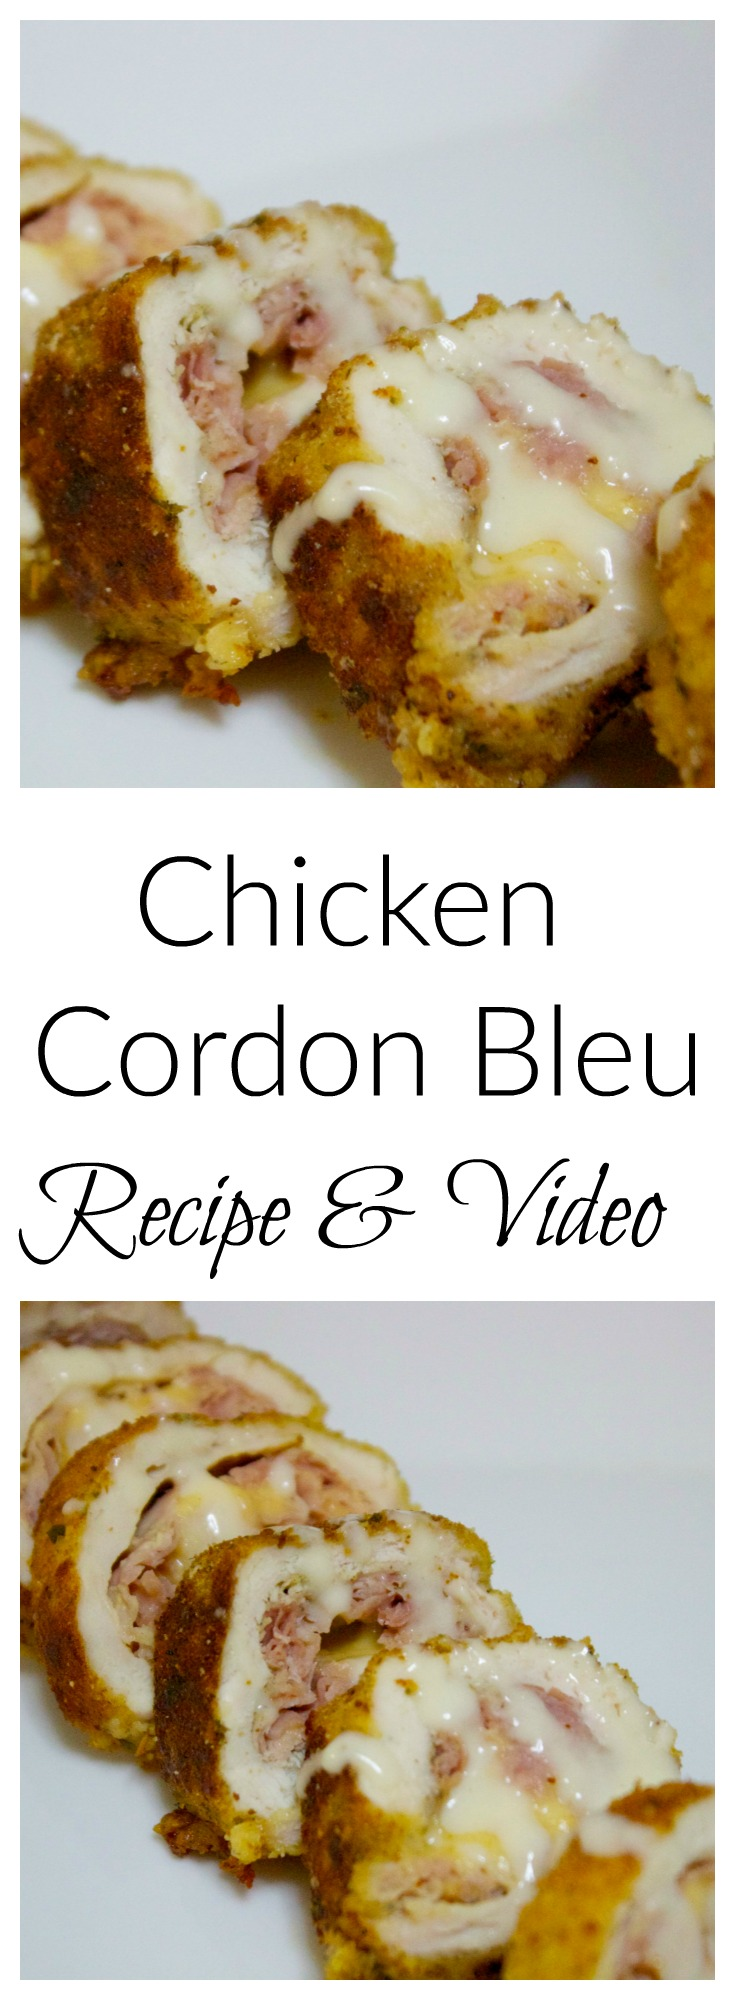 Easy Chicken Cordon Bleu recipe with video from Cooked By Julie